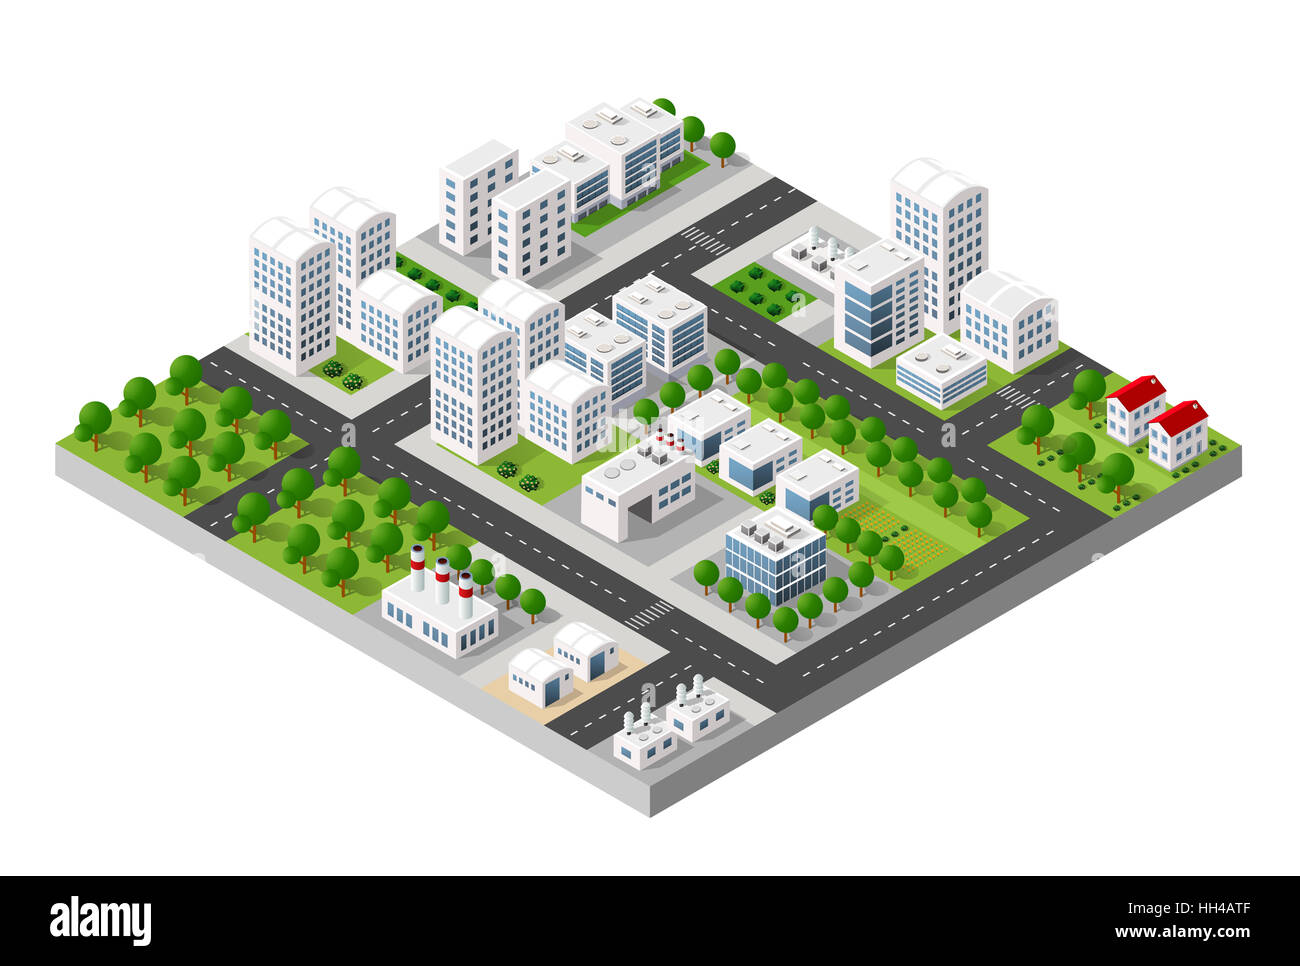 Top view of the city and the construction industry with isometric factories, mills, boilers and warehouses. - Stock Image